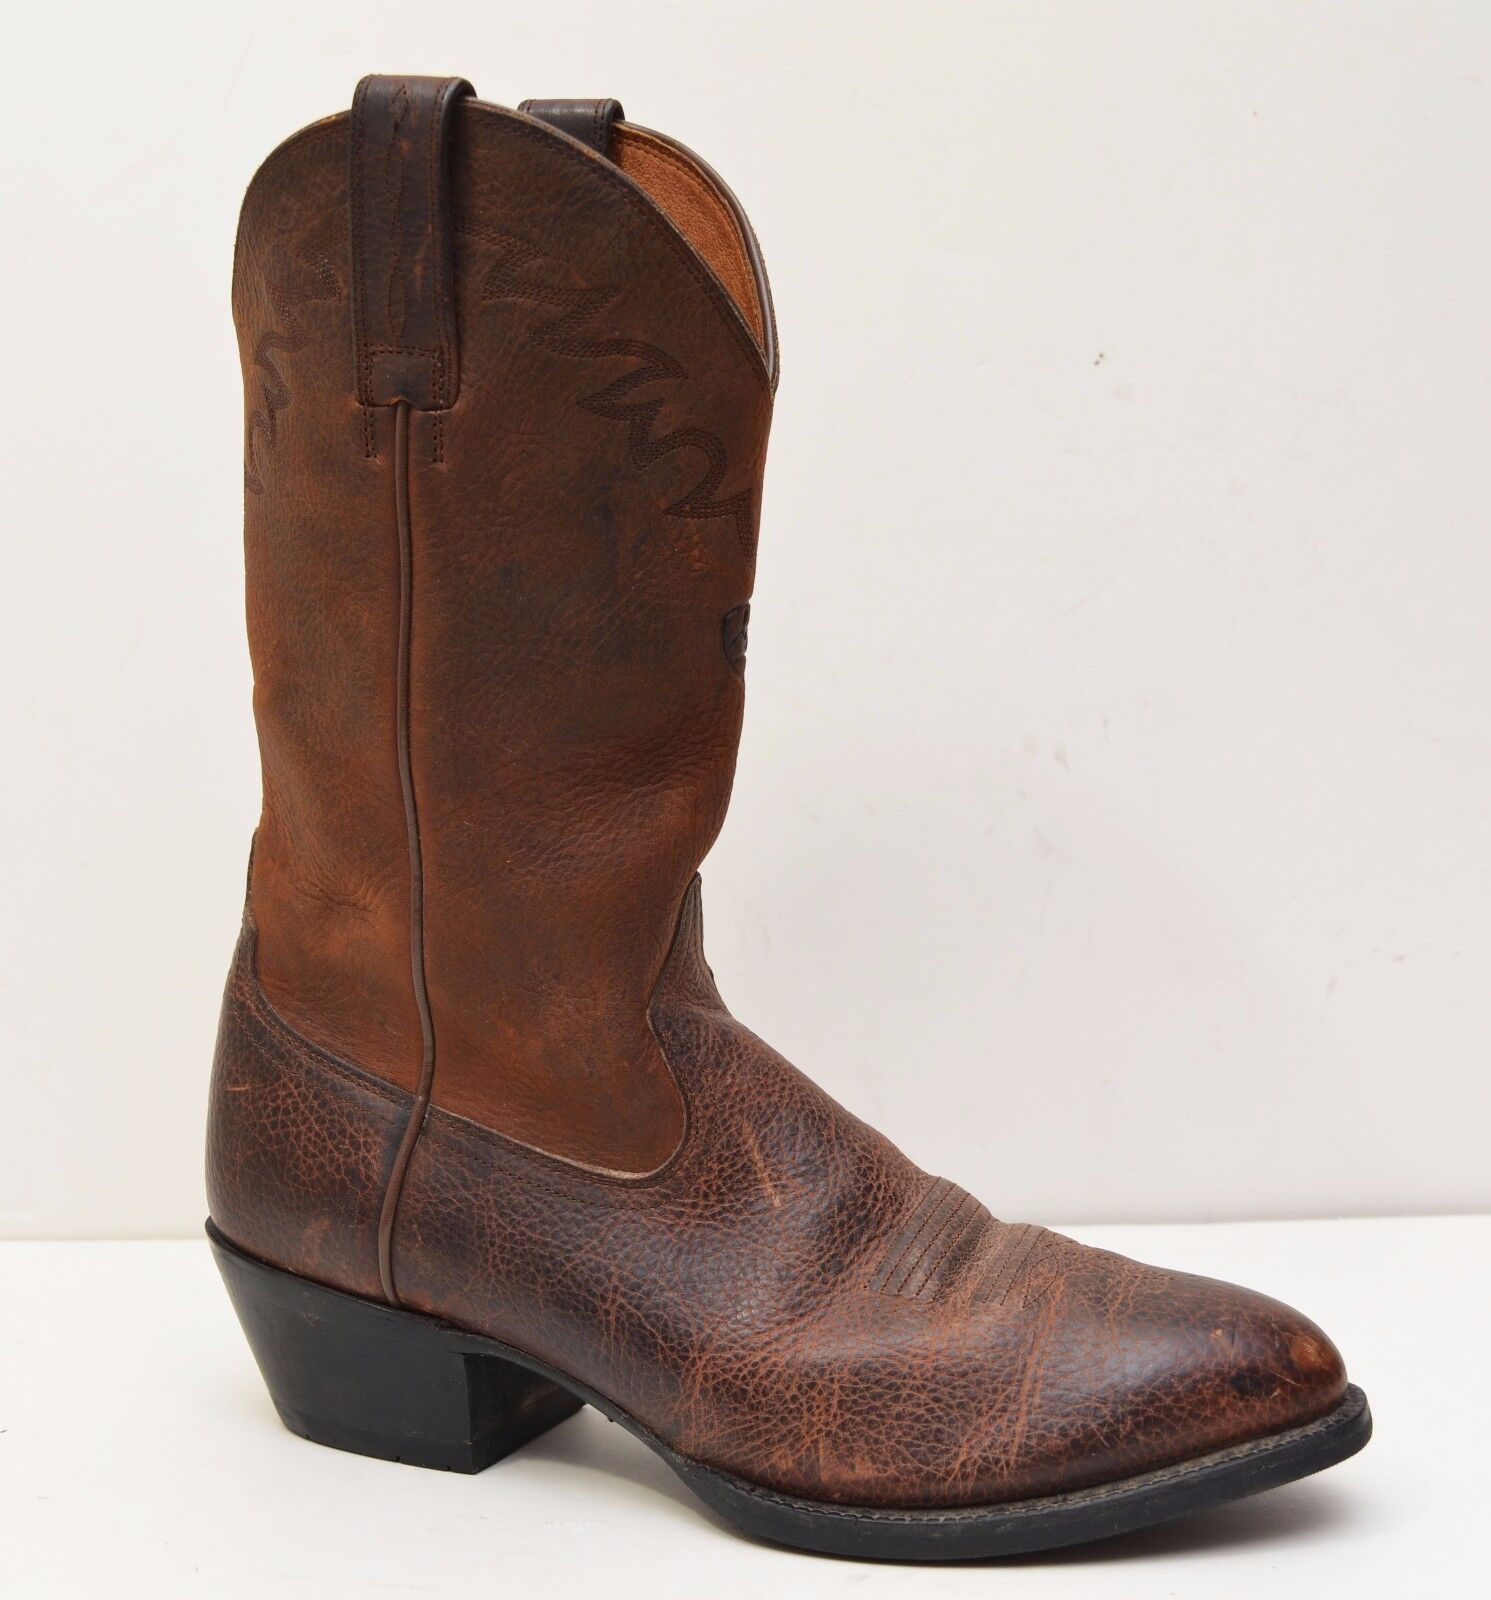 Ariat Mens Distressed Leather Sedona Brown Western Boot size 9.5 D